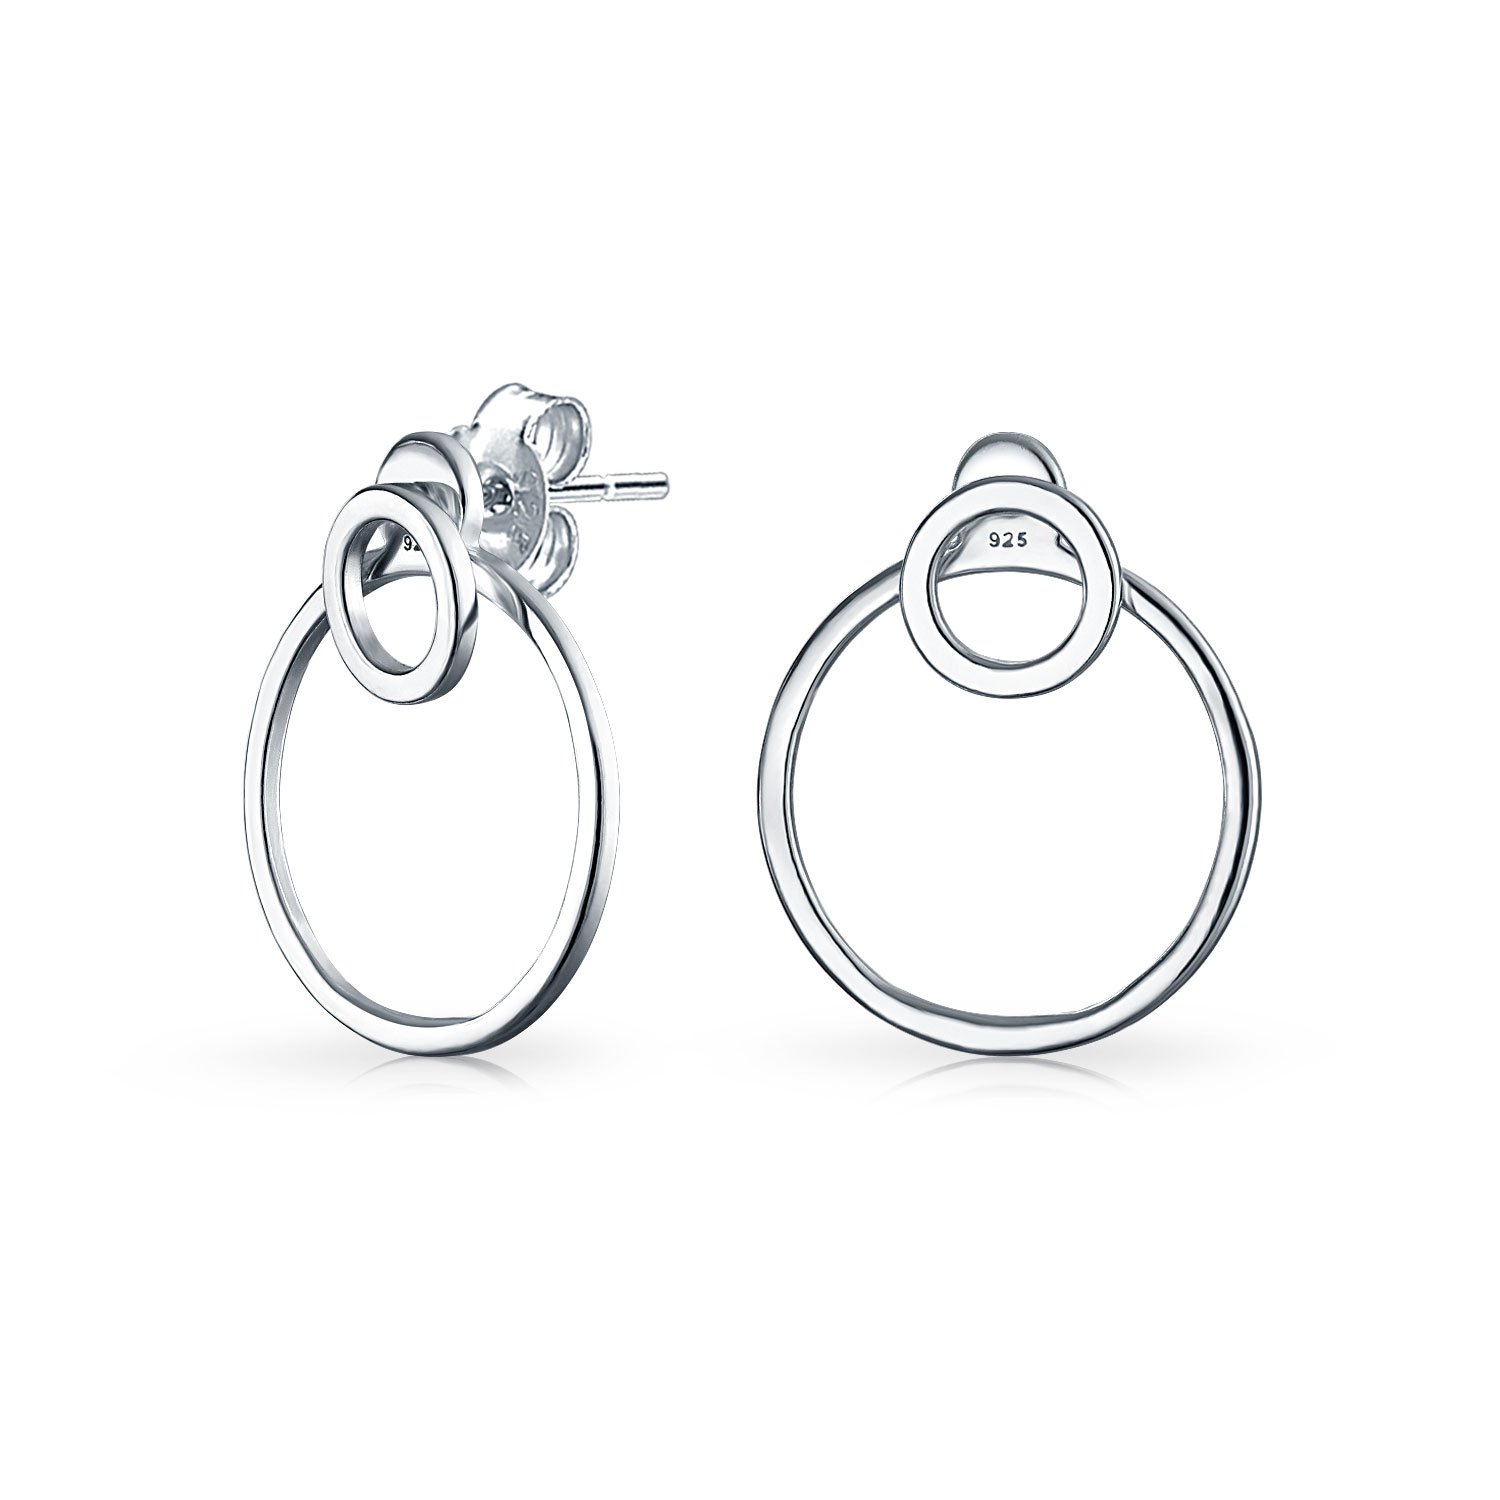 .925 Silver Double Open Circle Front Back Earrings Bling Jewelry PFS-12-6367S